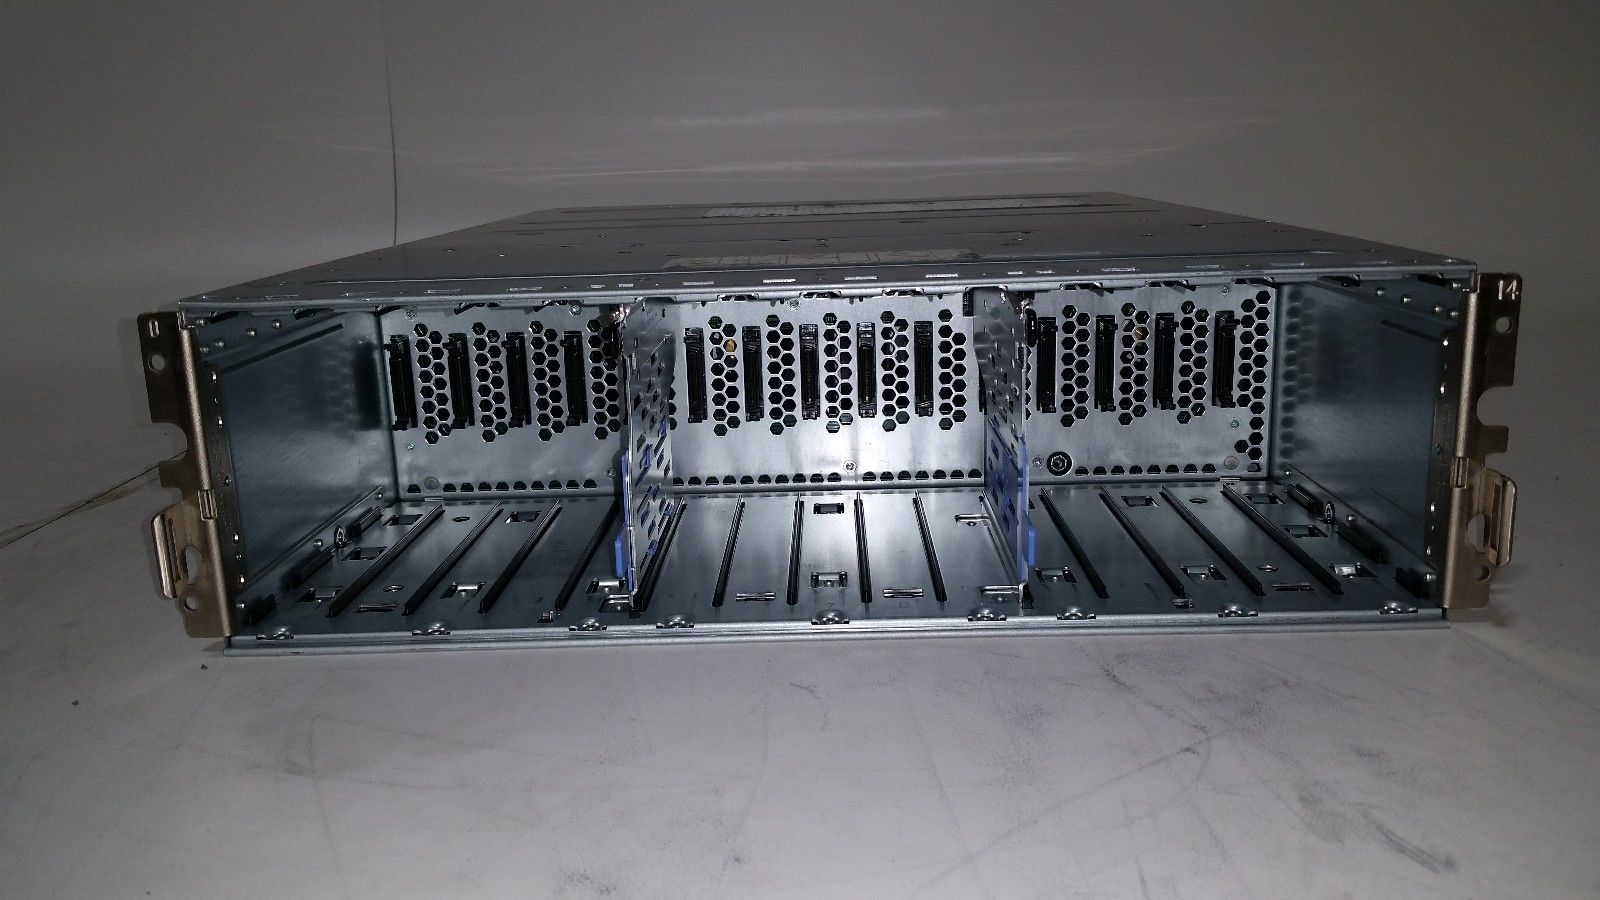 Emc Clariion Vnx5300 Stpe15 Fc Storage Array W 2x Psu And